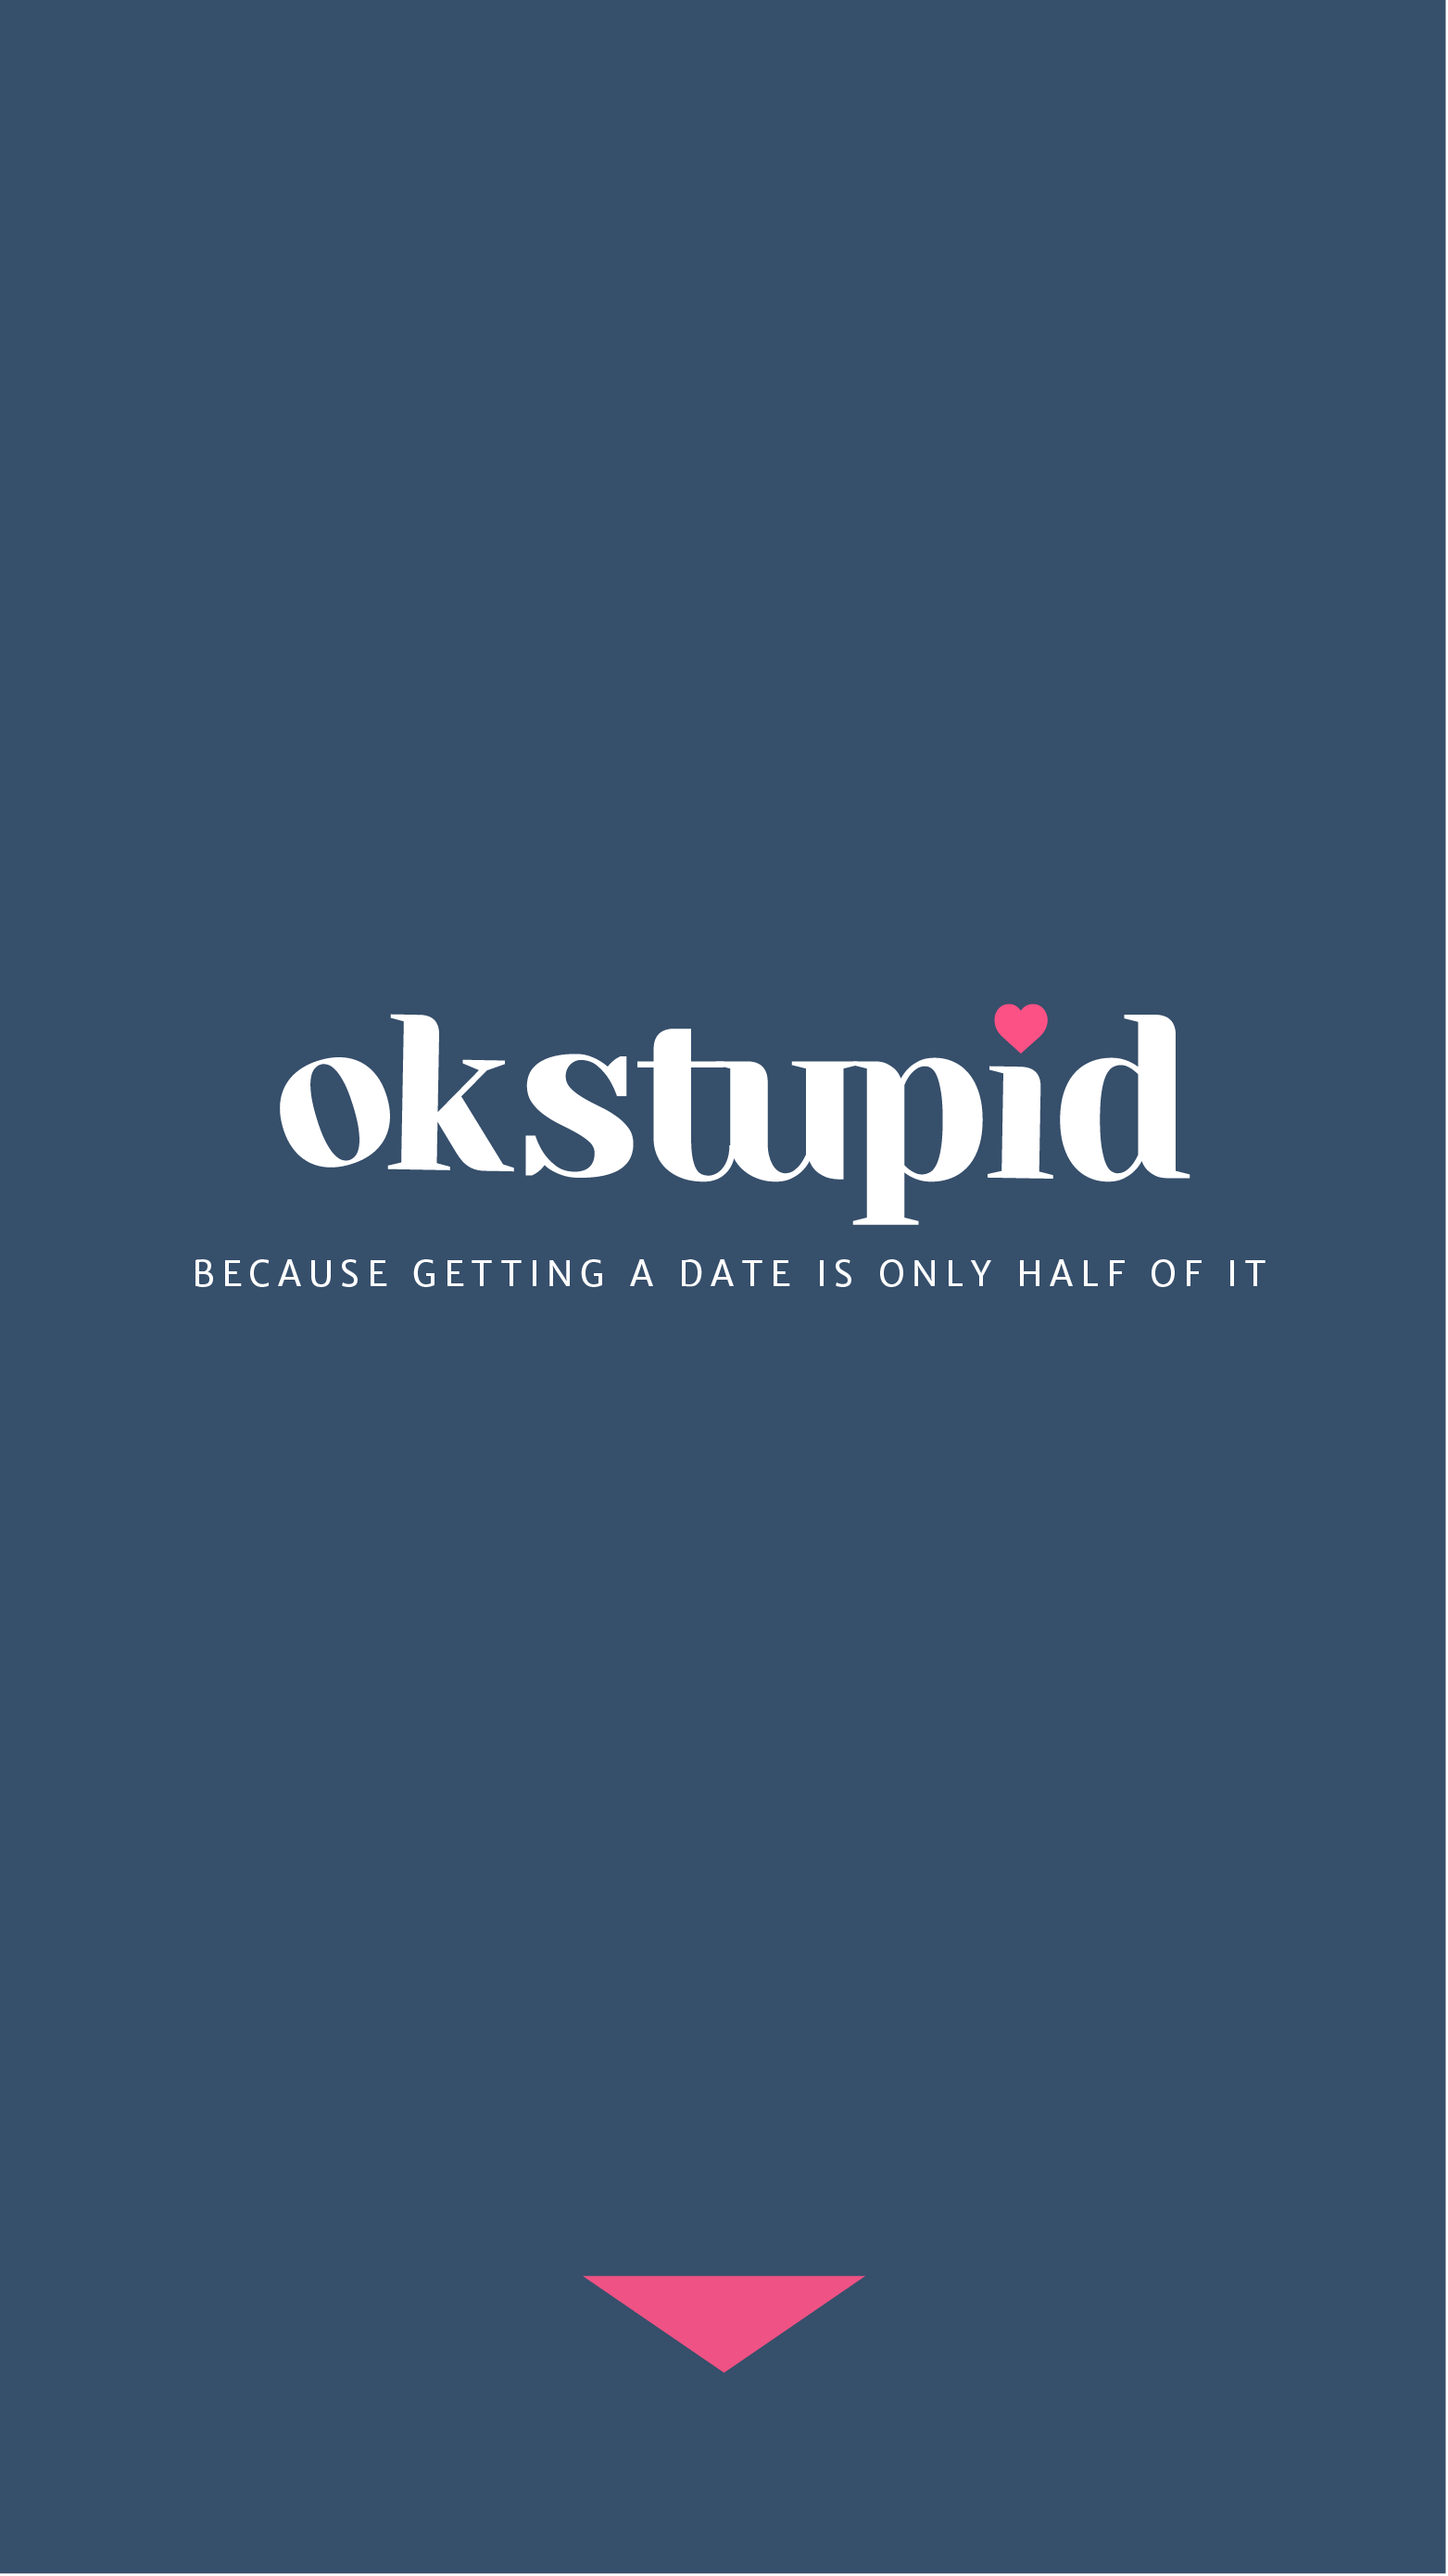 Mobile interface for a hypothetical mobile app called OkStupid